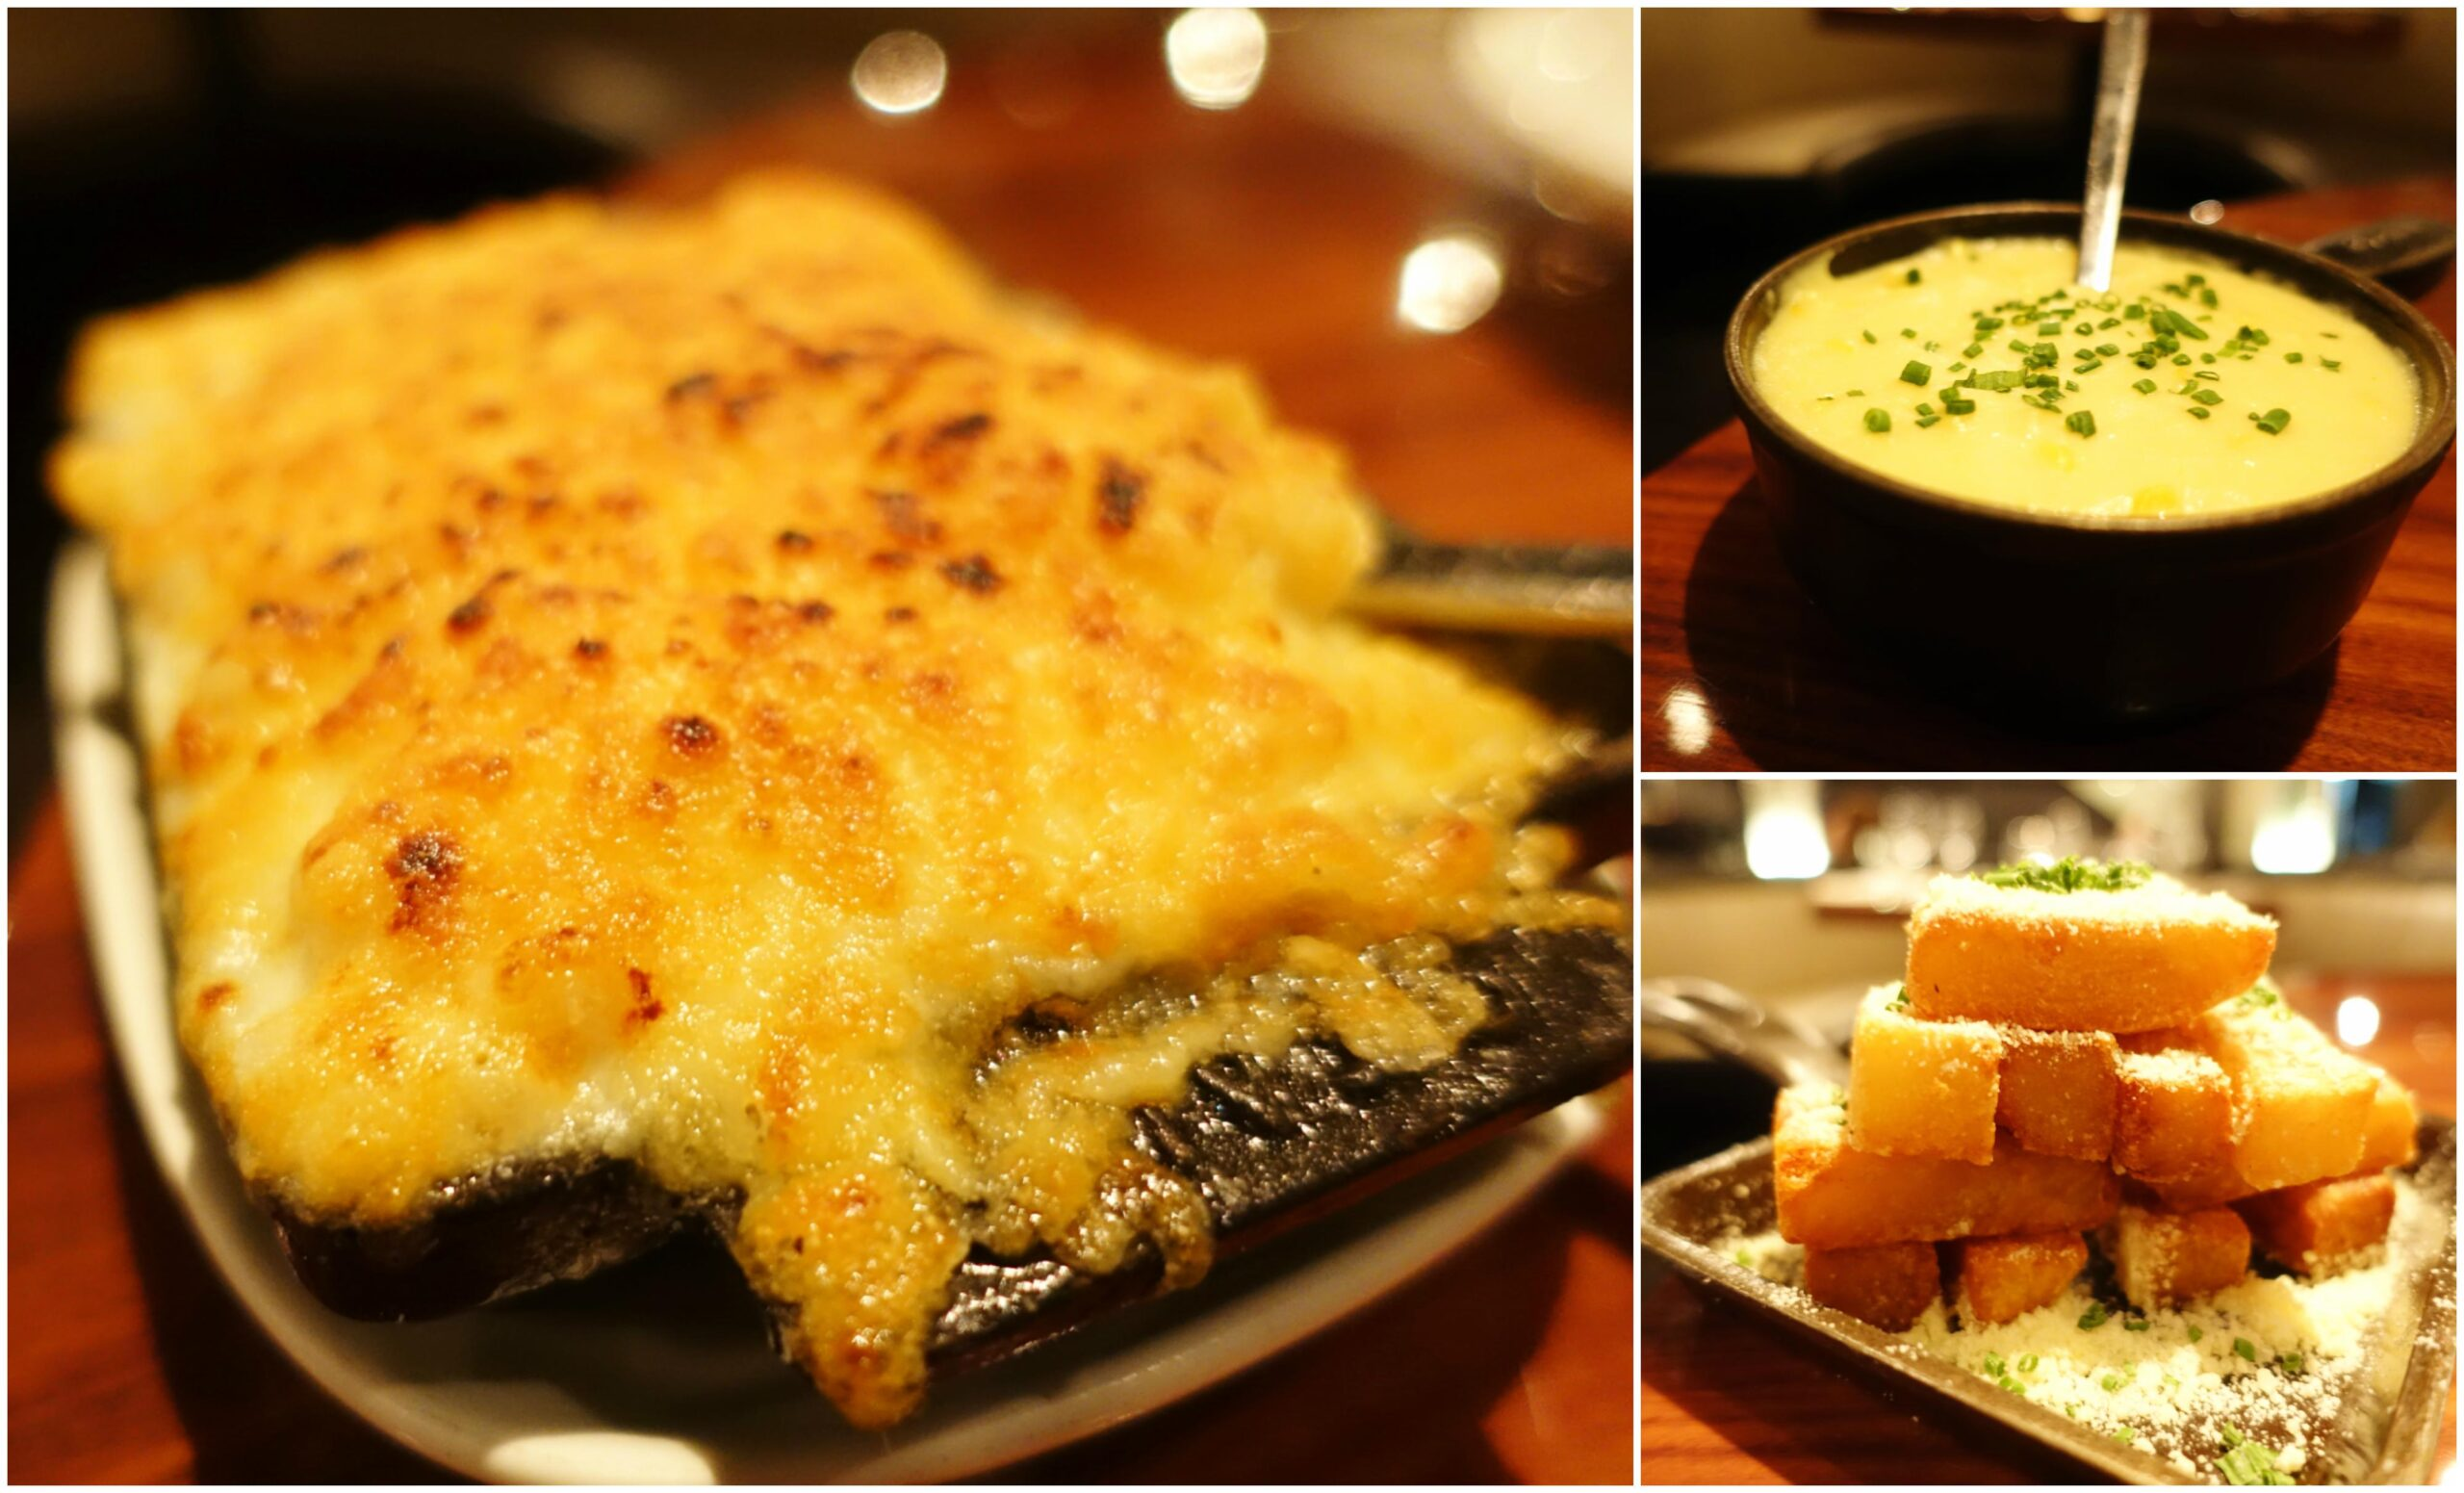 Mac & Cheese, Sweet Corn Pudding, Truffle Fries - STK Downtown, New York City